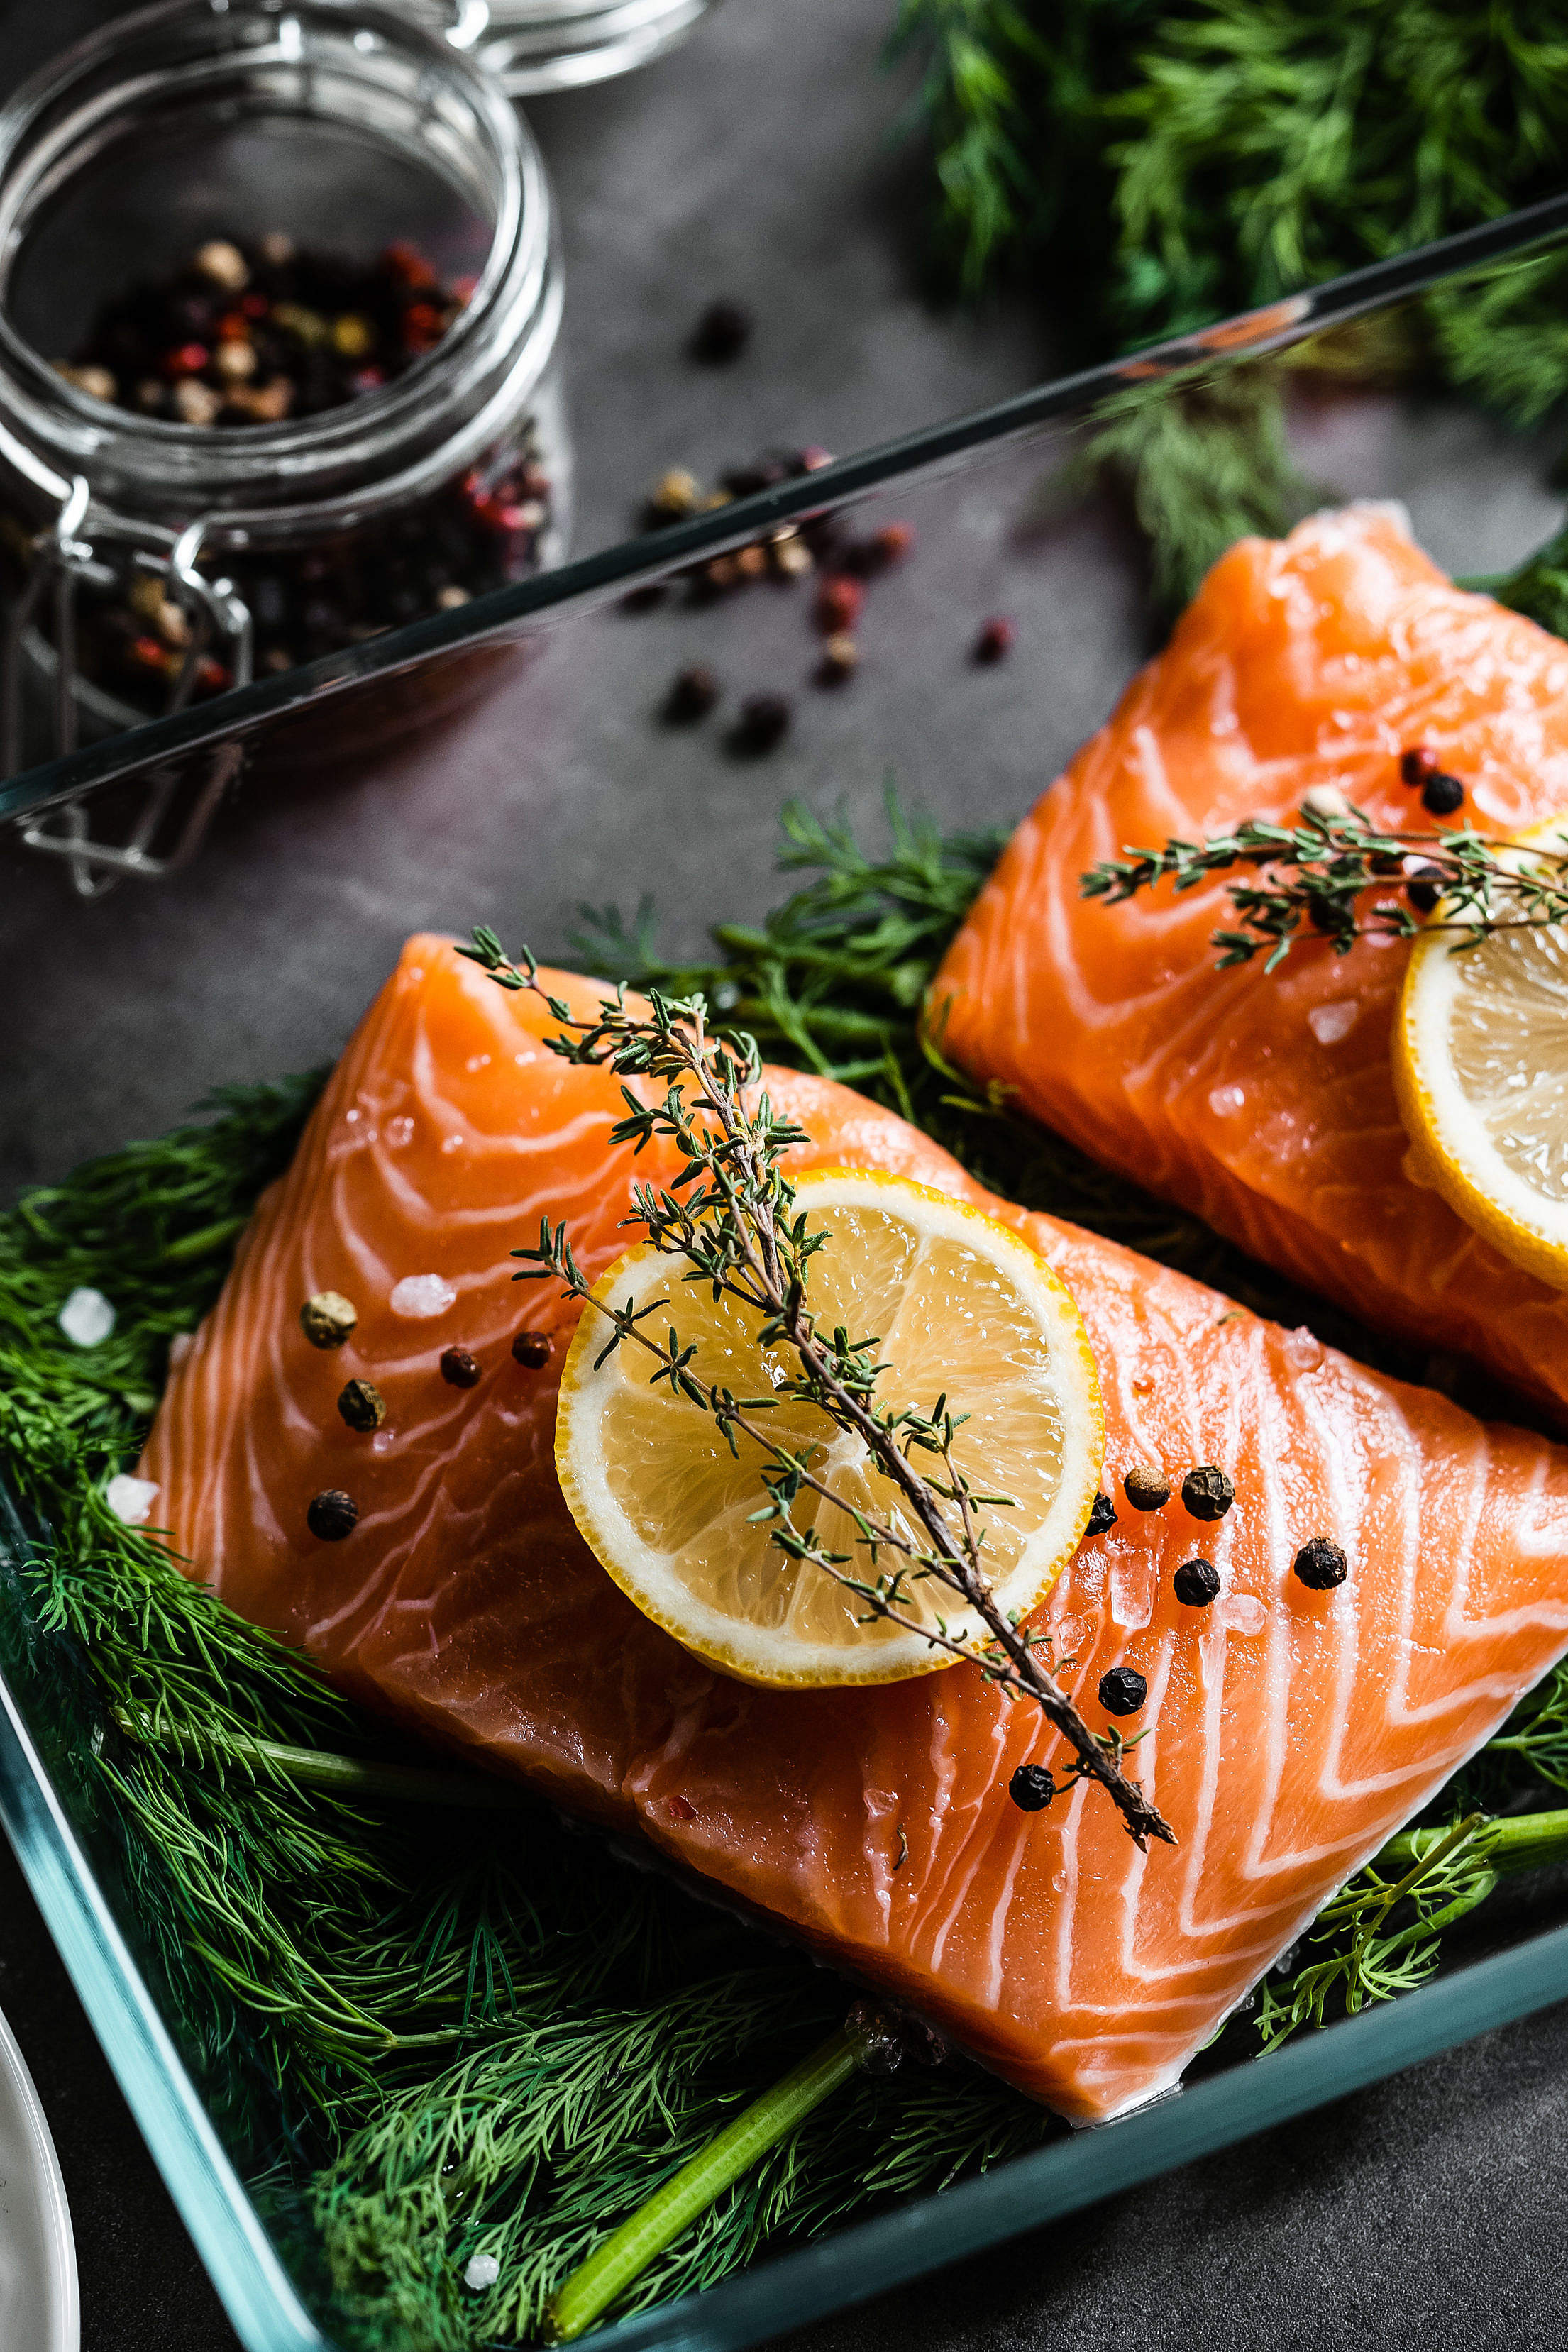 Fresh Raw Salmon Fillets with Aromatic Herbs Free Stock Photo